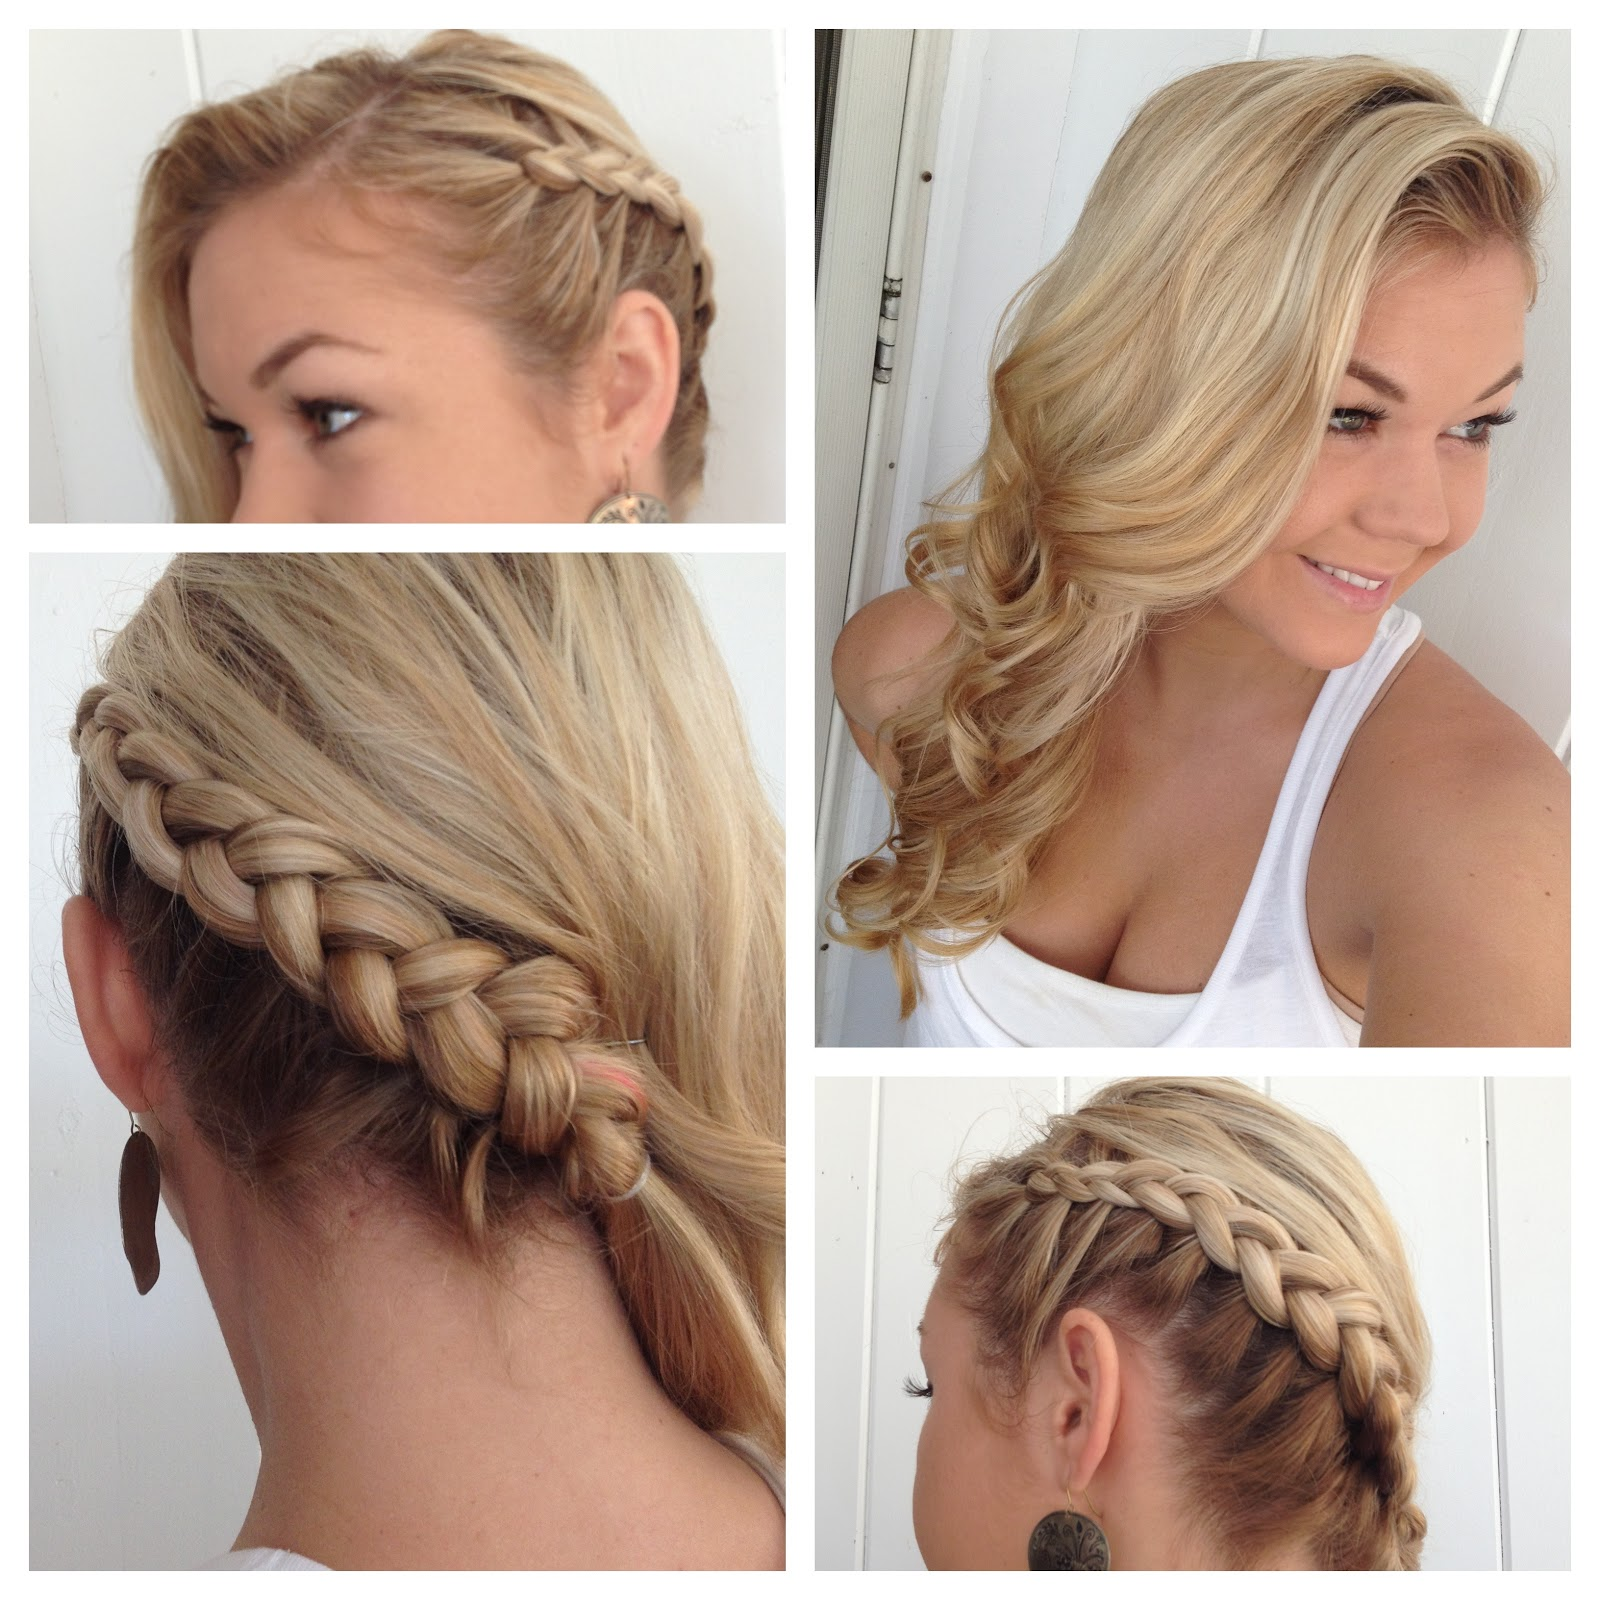 alexsis mae side braid with classic curls. Black Bedroom Furniture Sets. Home Design Ideas